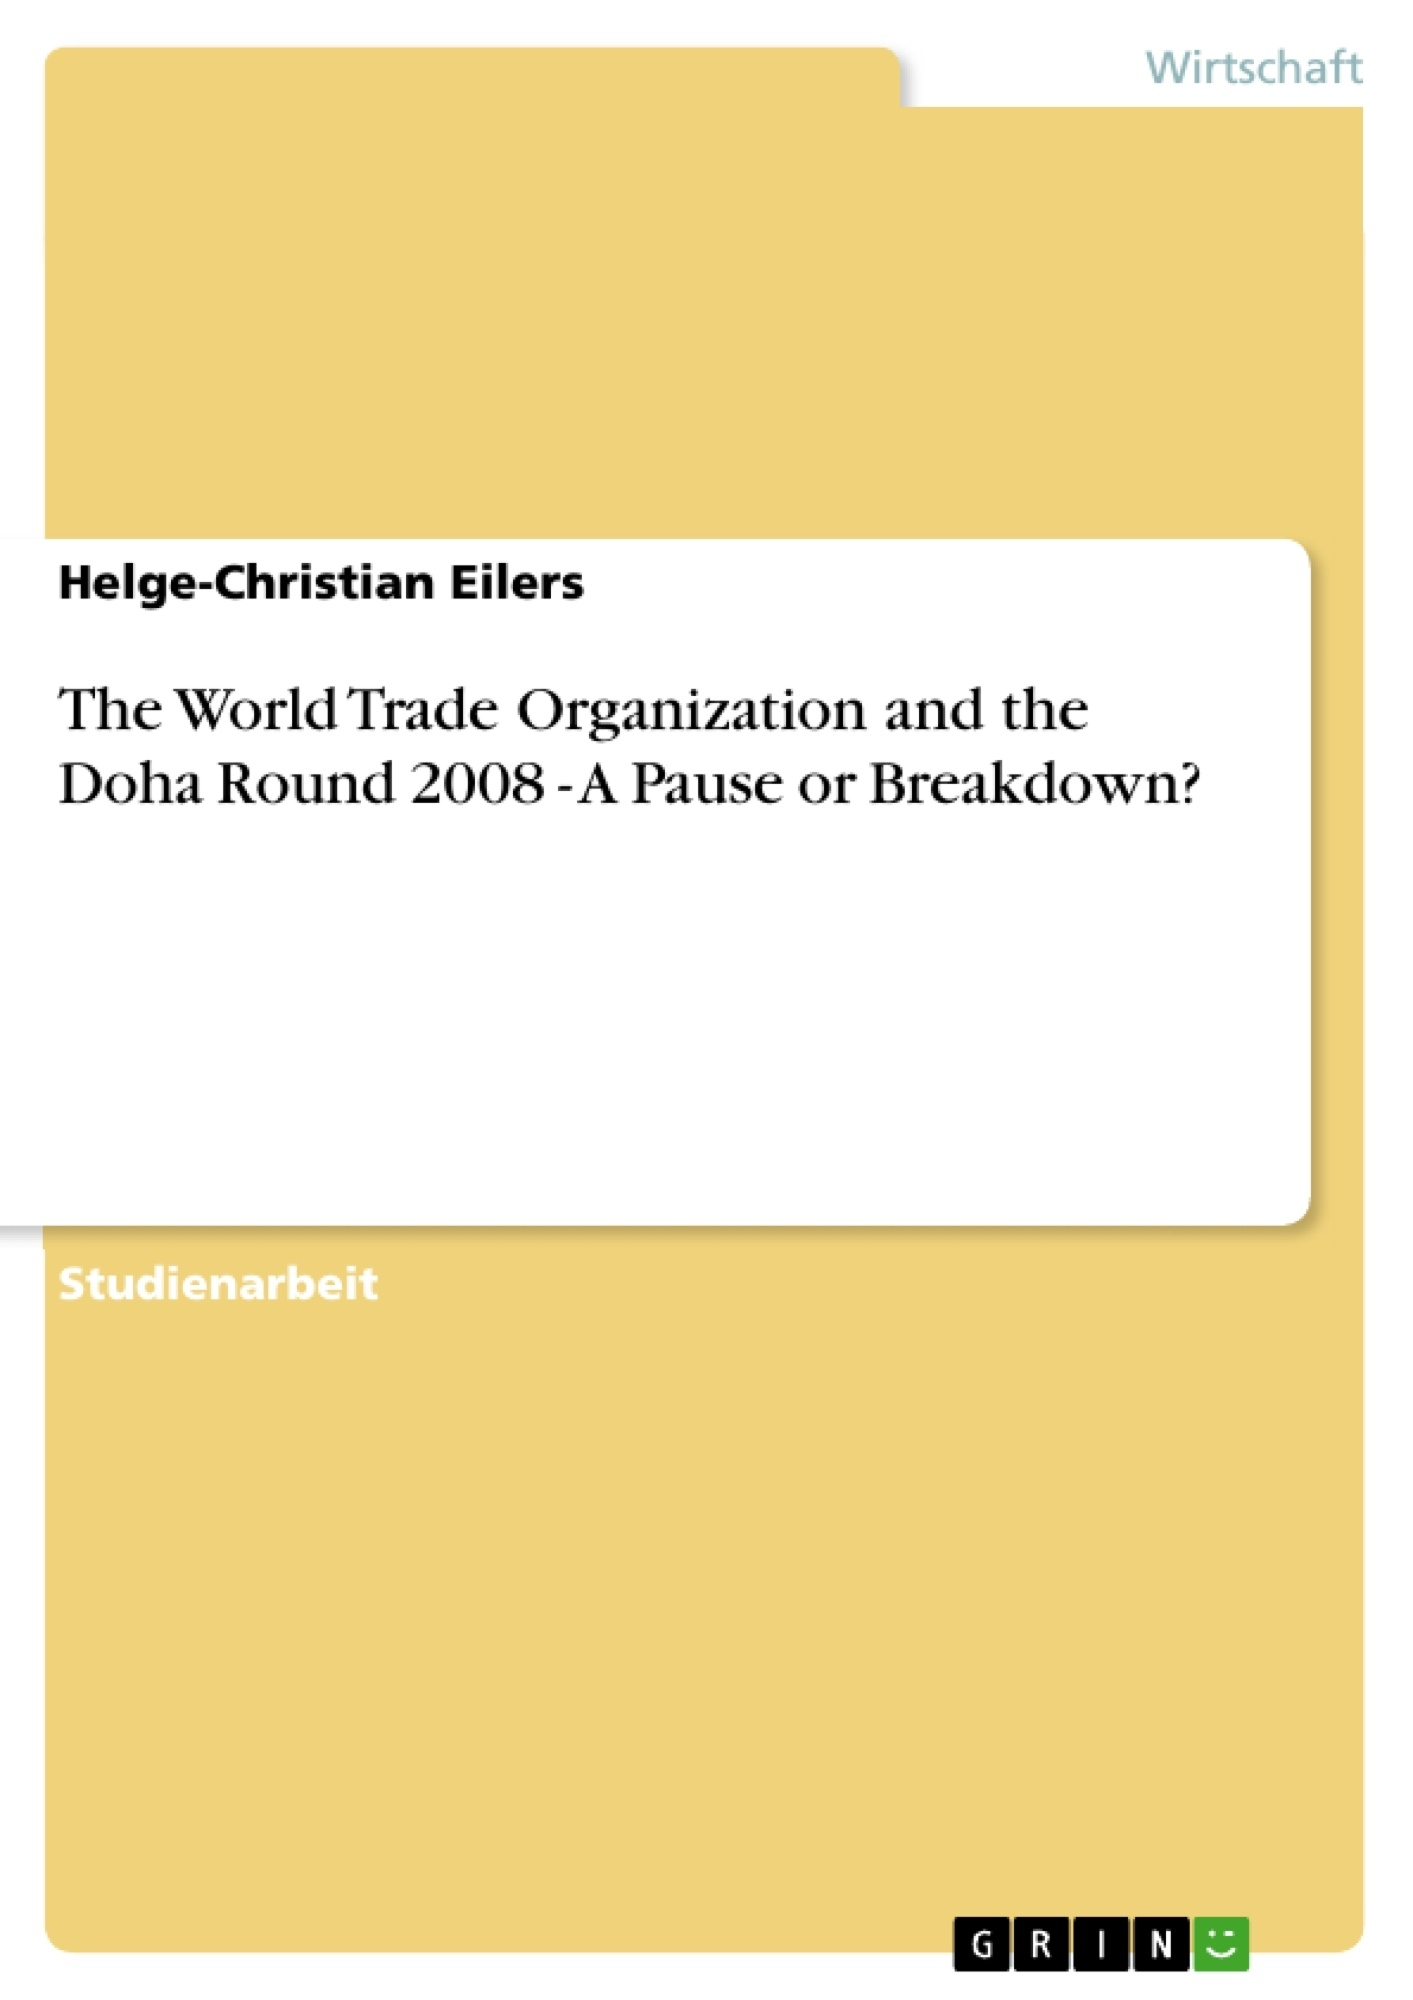 Titel: The World Trade Organization and the Doha Round 2008 - A Pause or Breakdown?